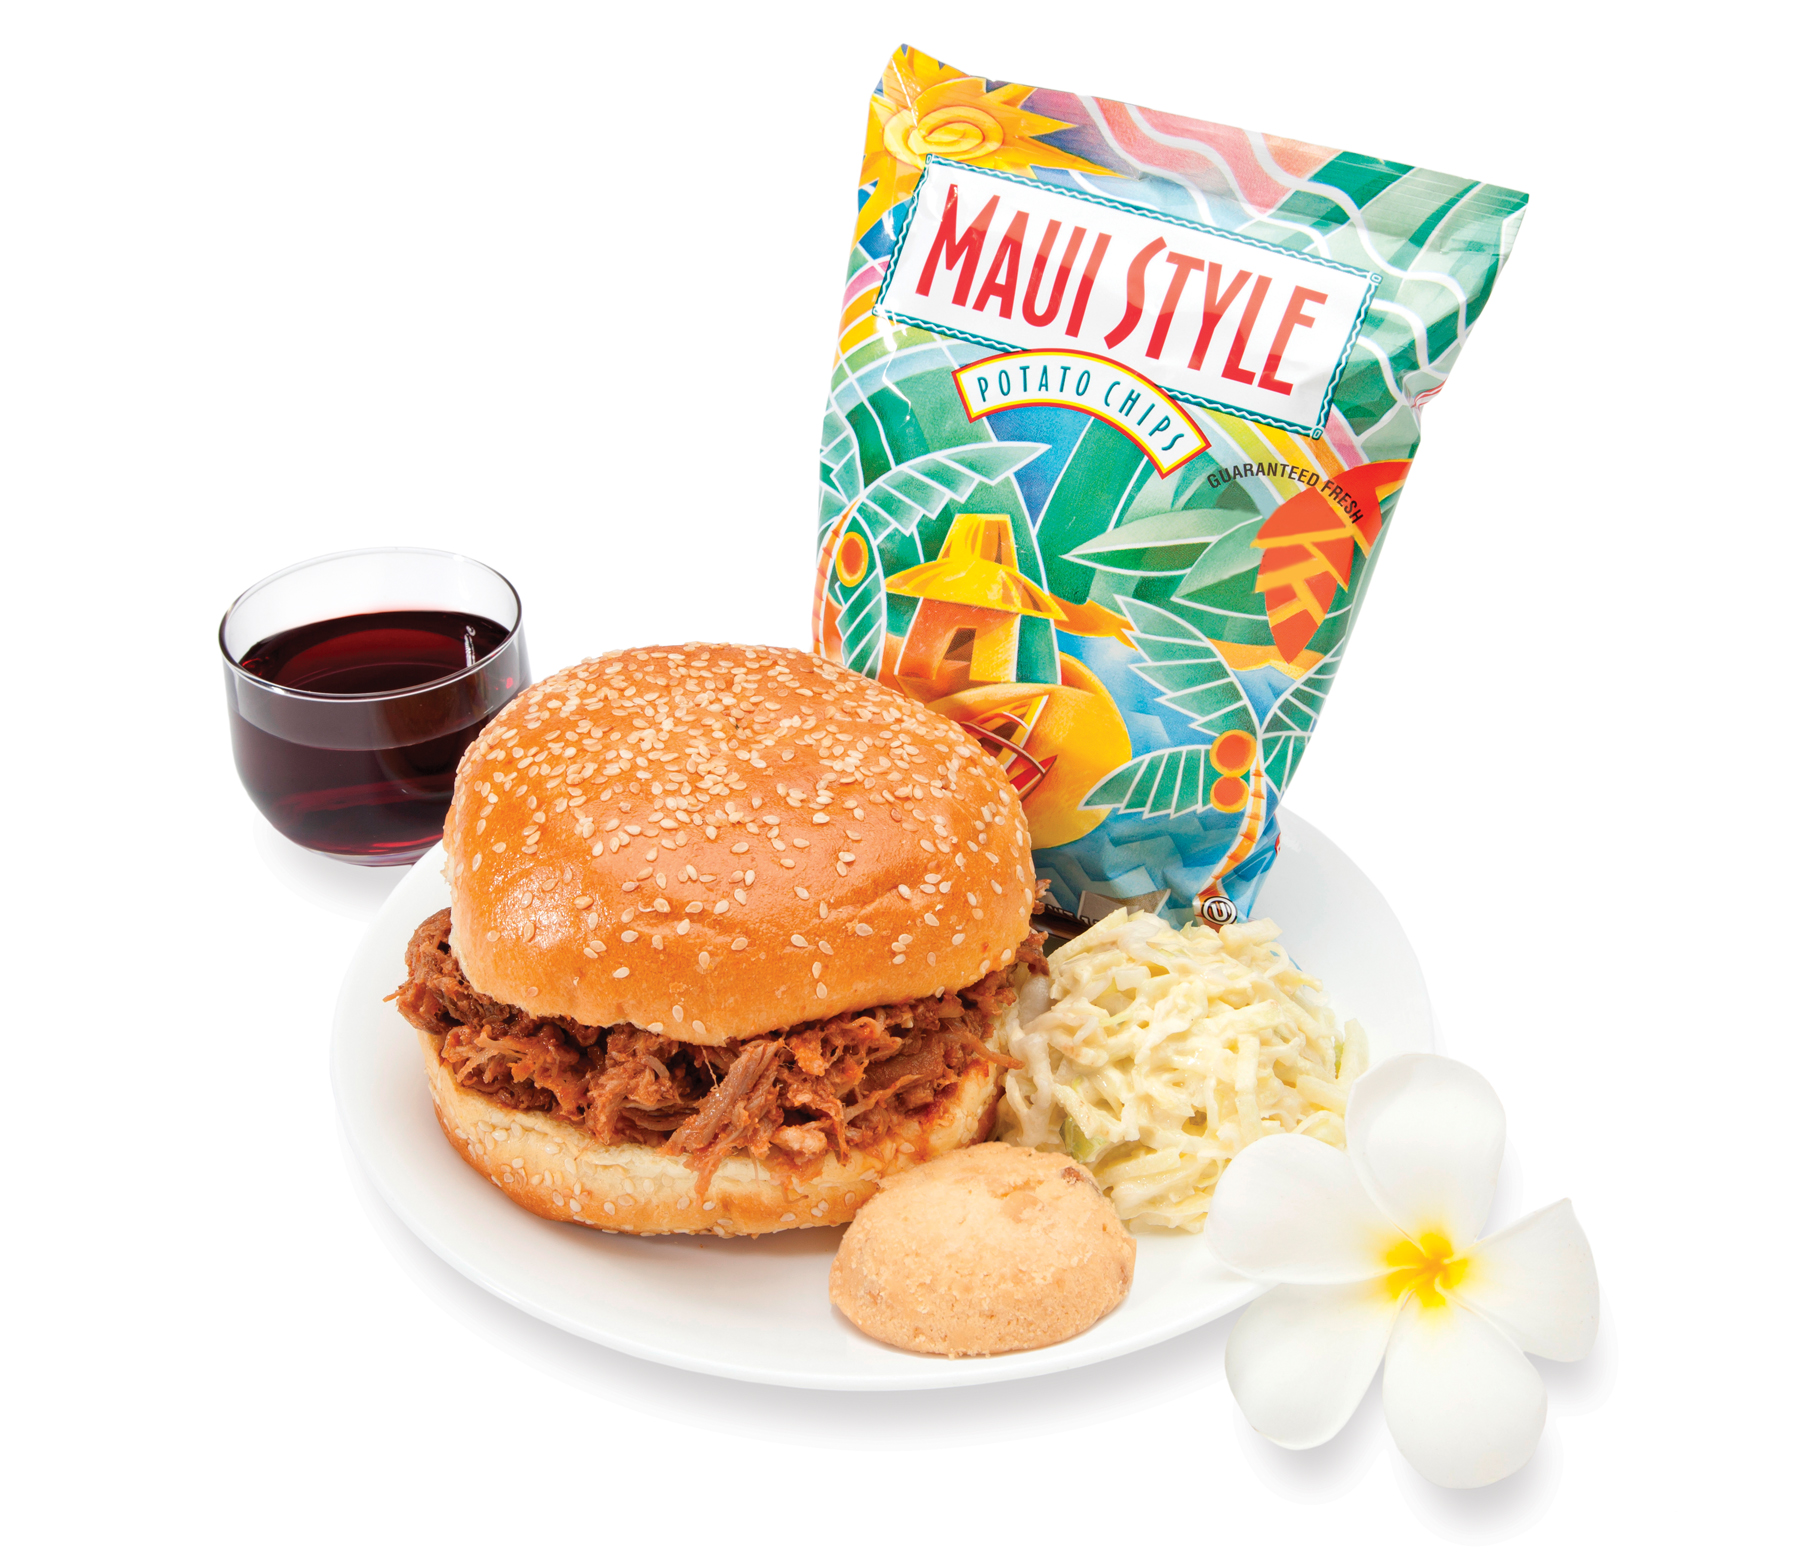 This is one of the new Premium Meals for purchase that reflects Hawaiian's focus on showcasing the unique tastes of Hawaii.